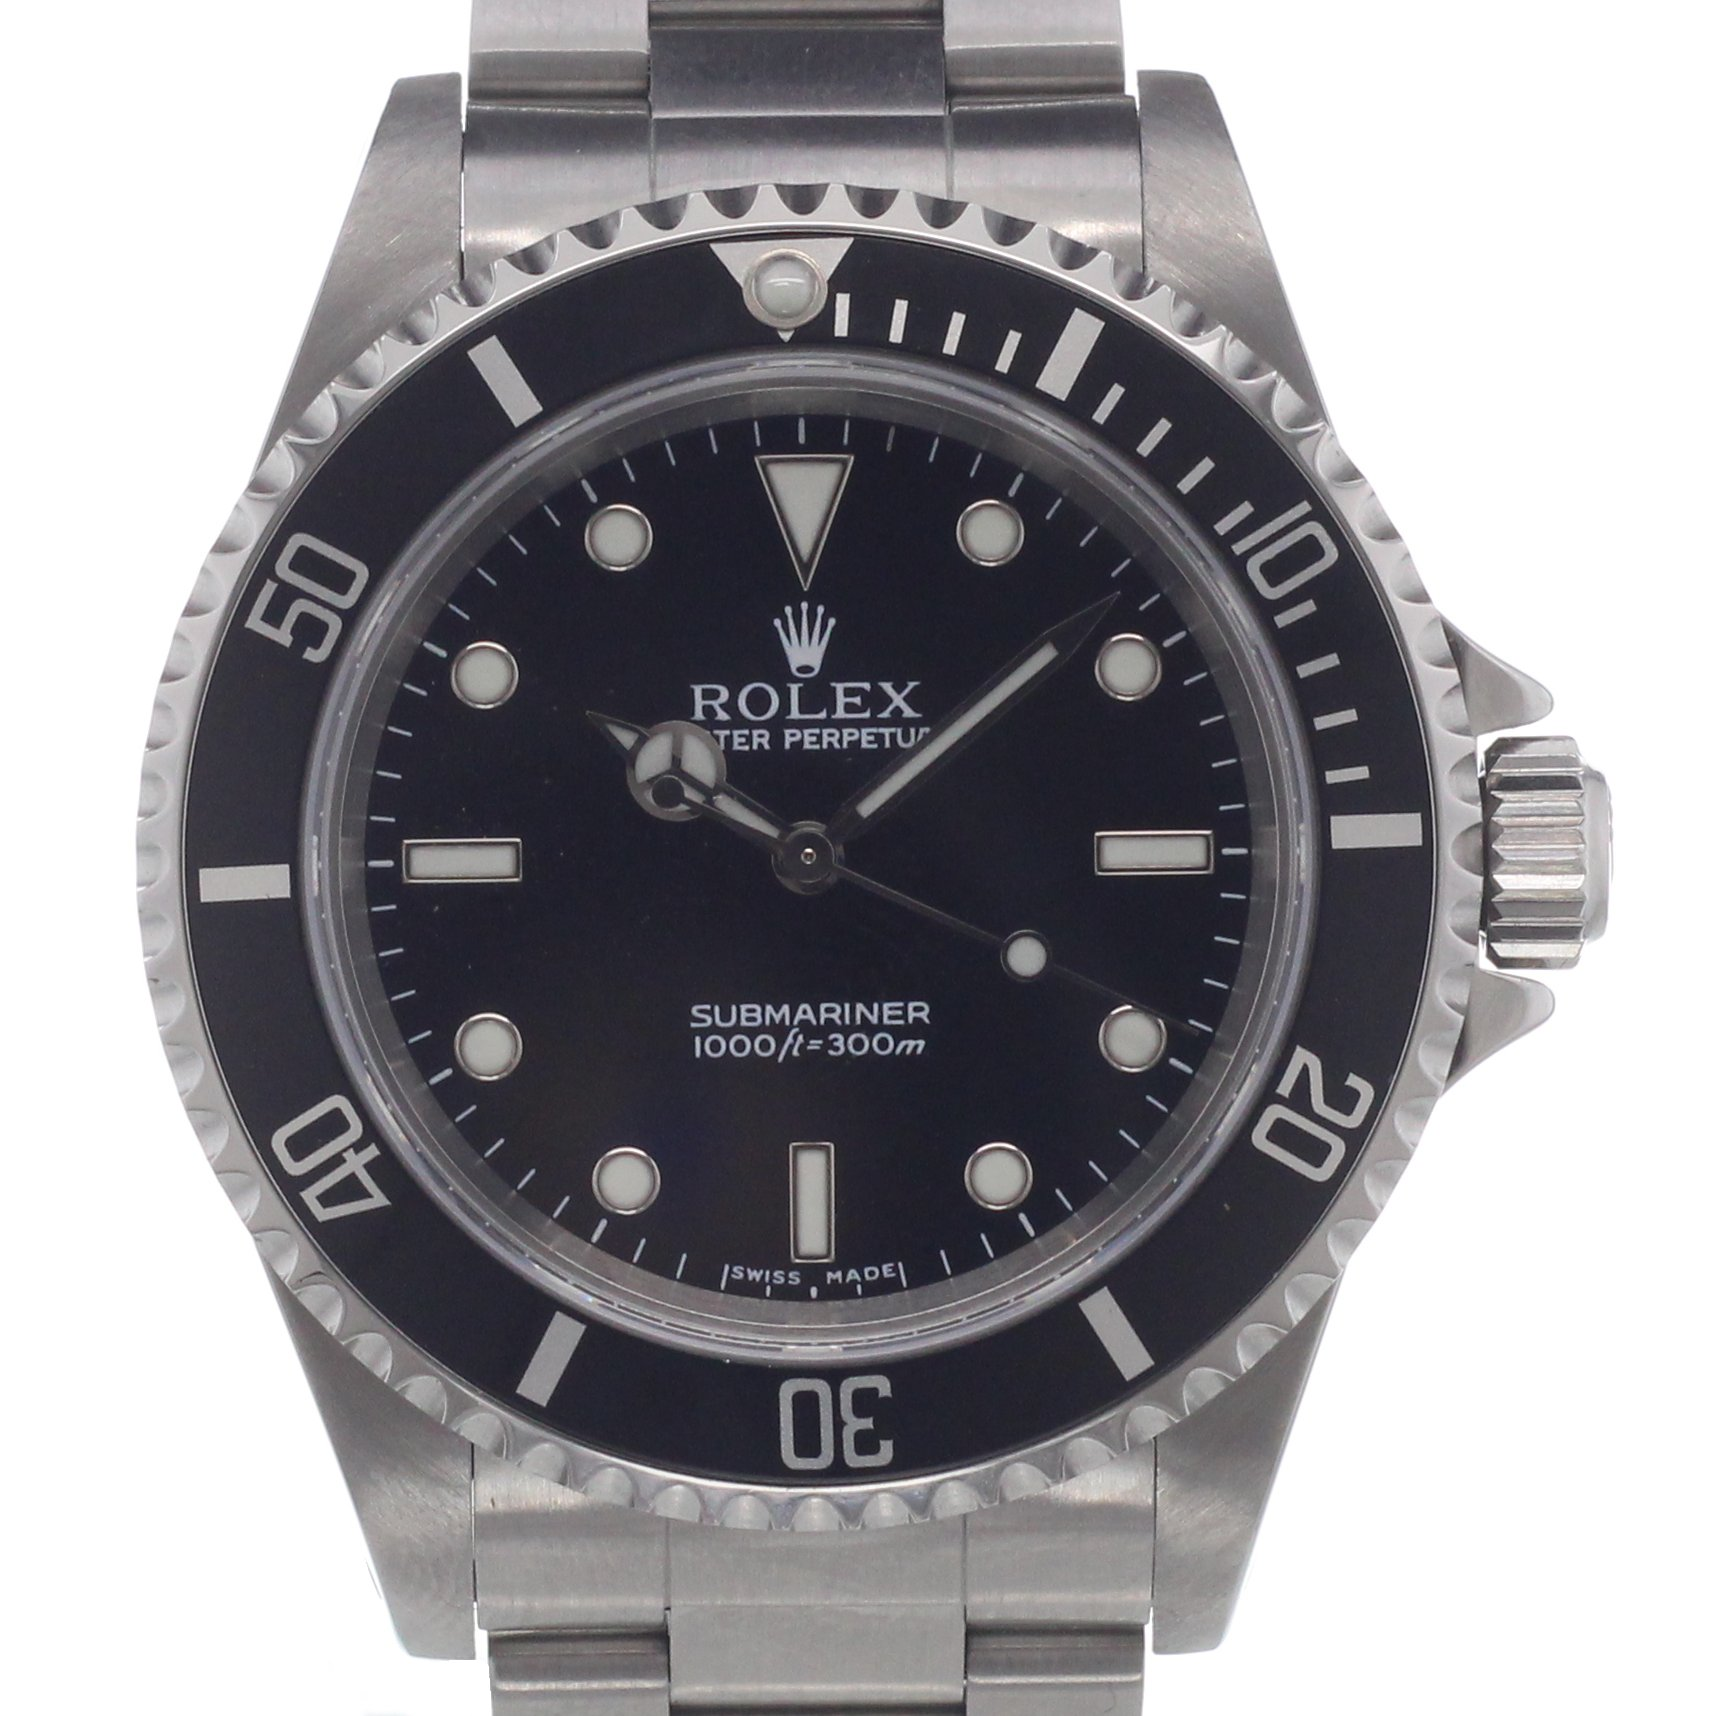 rolex submariner 14060m kaufen chronext. Black Bedroom Furniture Sets. Home Design Ideas